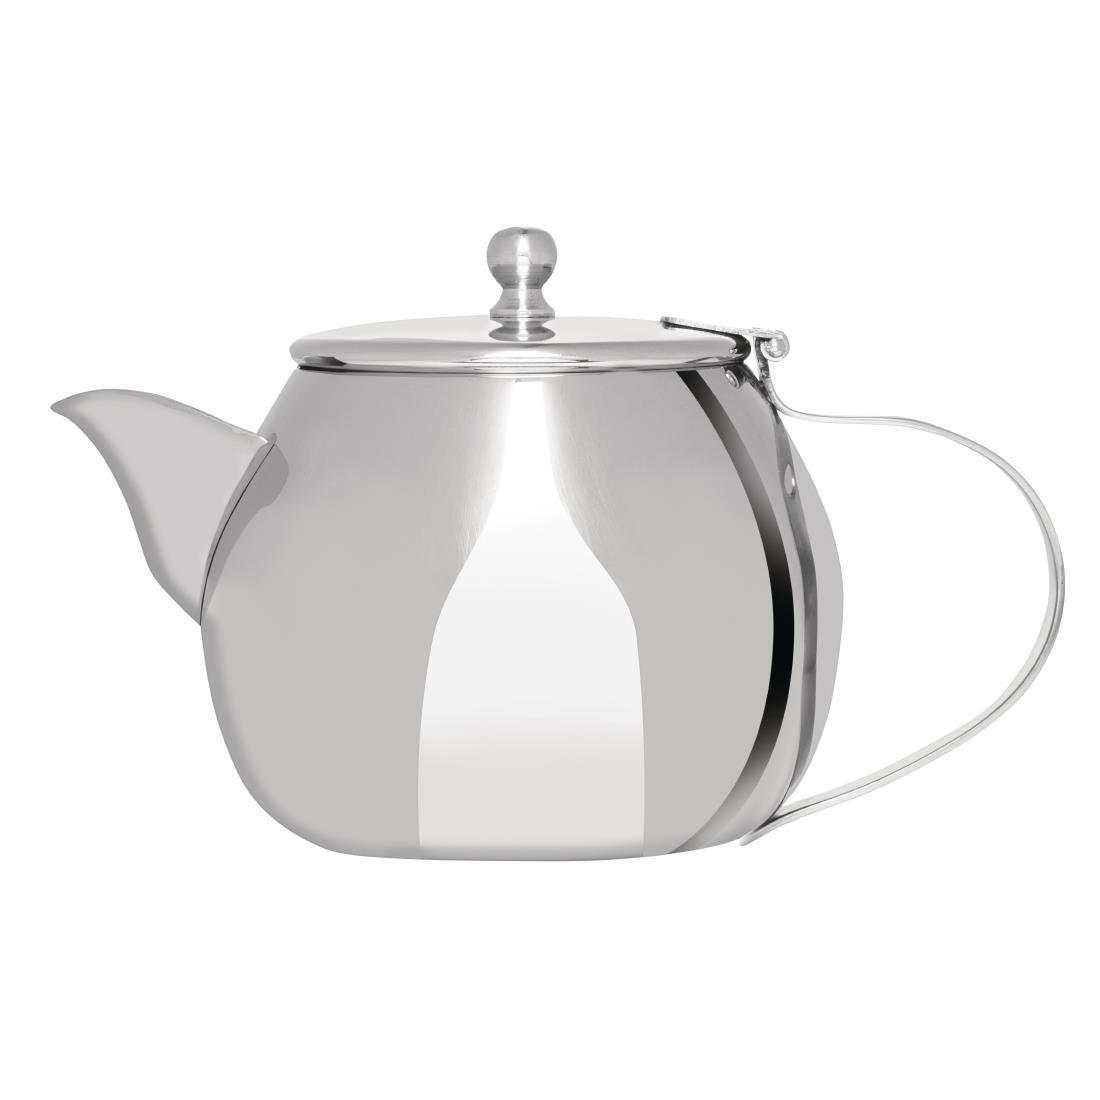 Olympia Non-Drip Stainless Steel Teapot 430ml